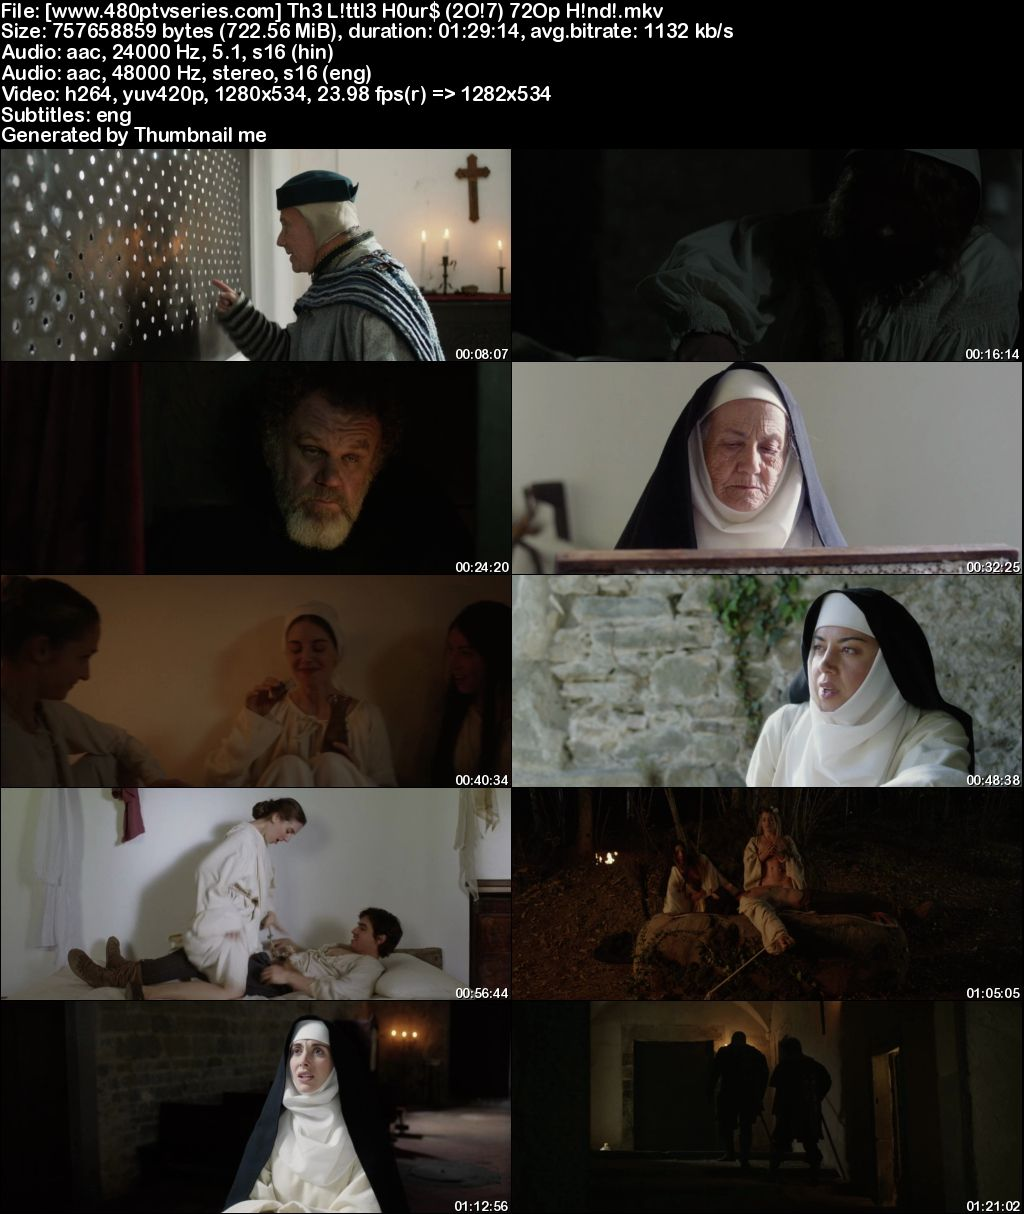 Watch Online Free The Little Hours (2017) Full Hindi Dual Audio Movie Download 480p 720p Bluray